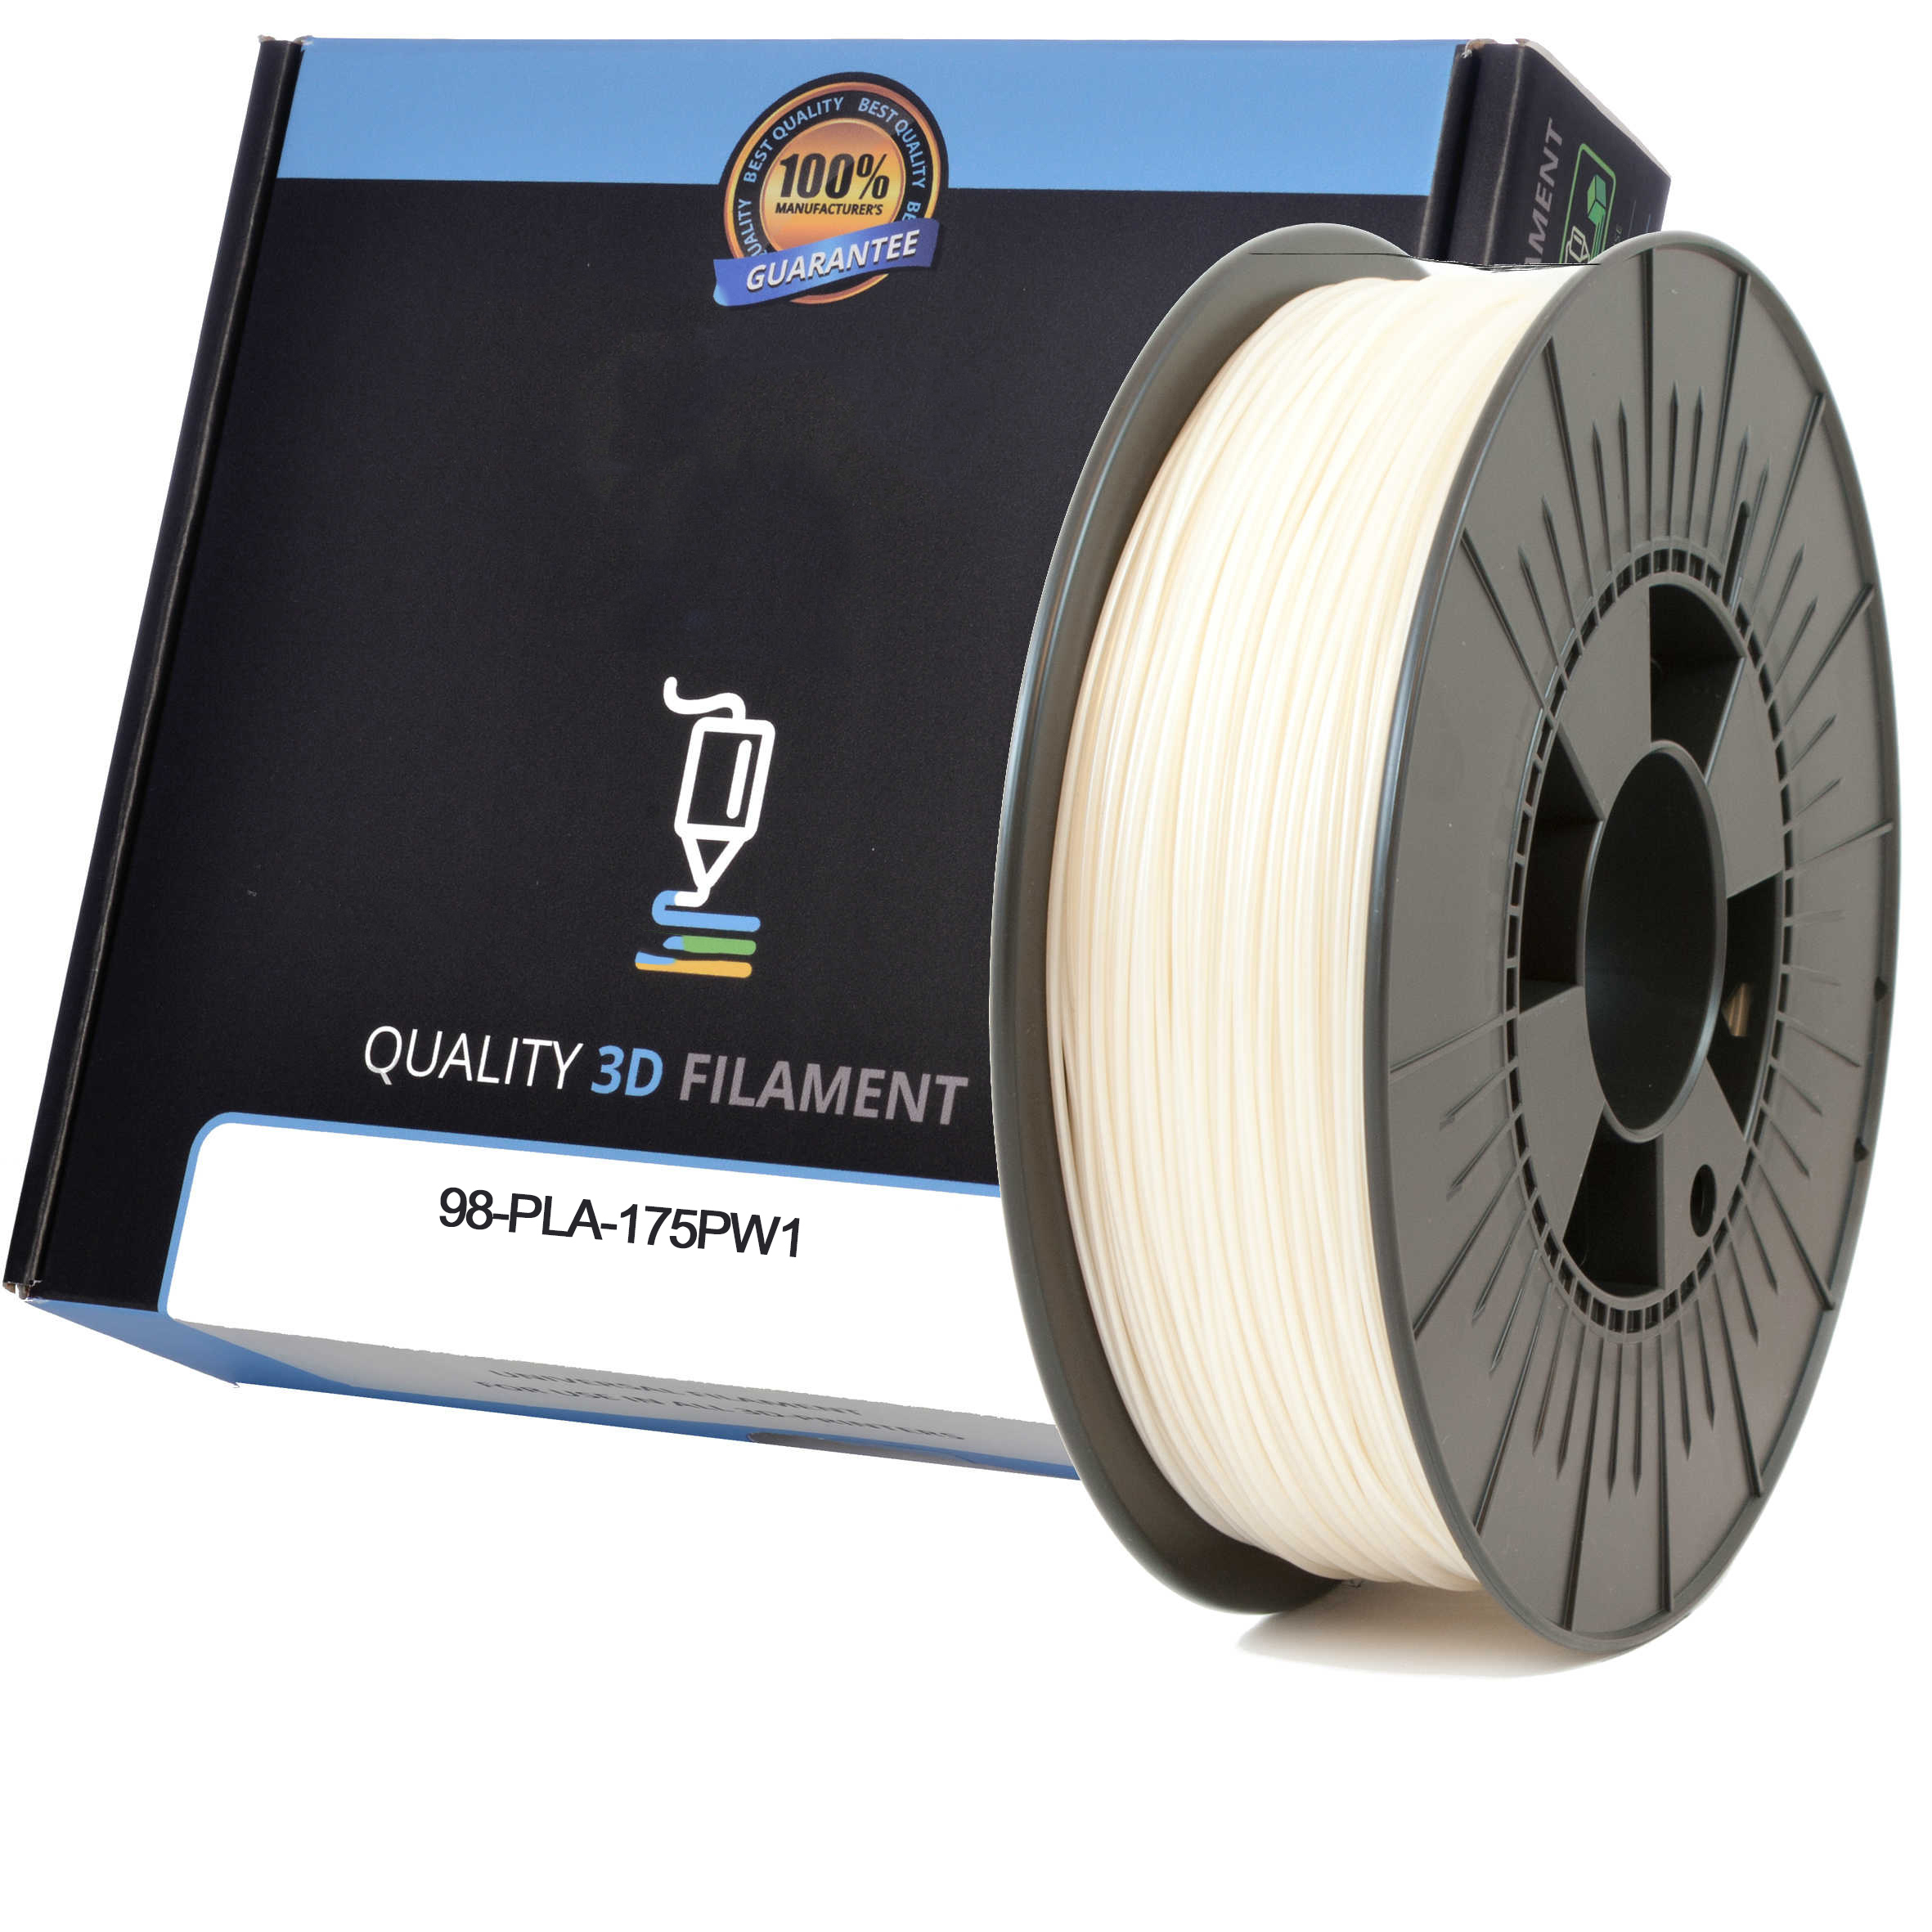 Premium Compatible PLA 1.75mm Pearl White 0.5kg 3D Filament (98-PLA-175PW1)